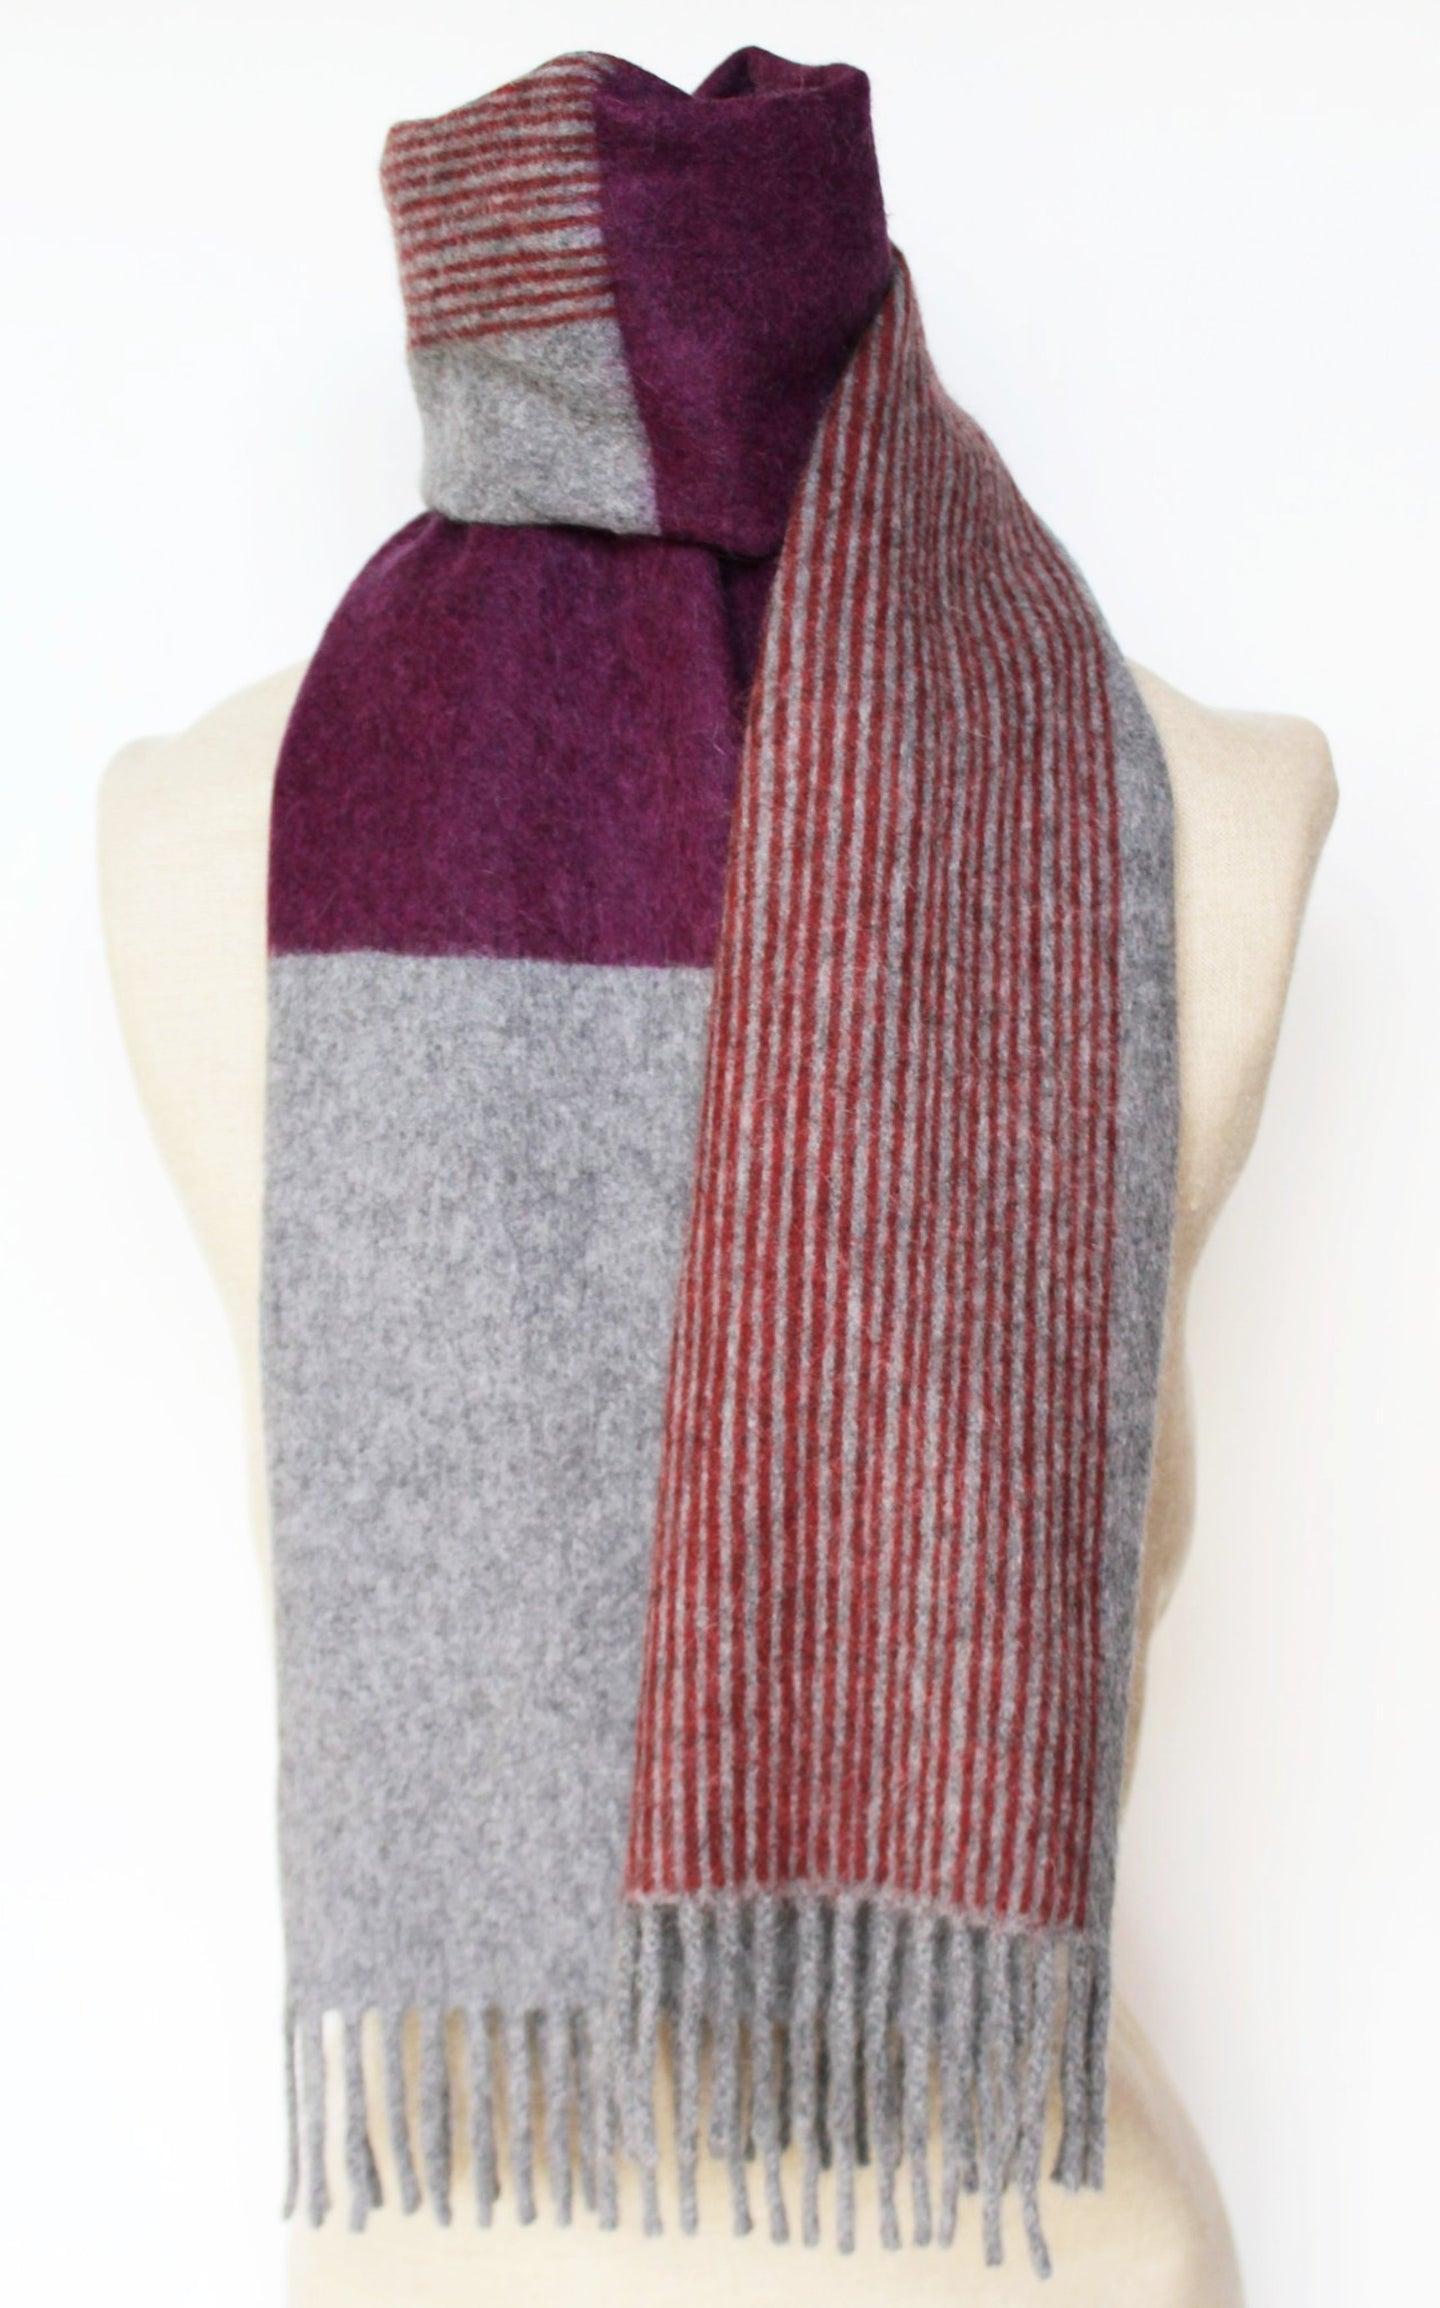 Jane Keith Designs Colour Block hand printed Angora Wool scarf - Staffa 5